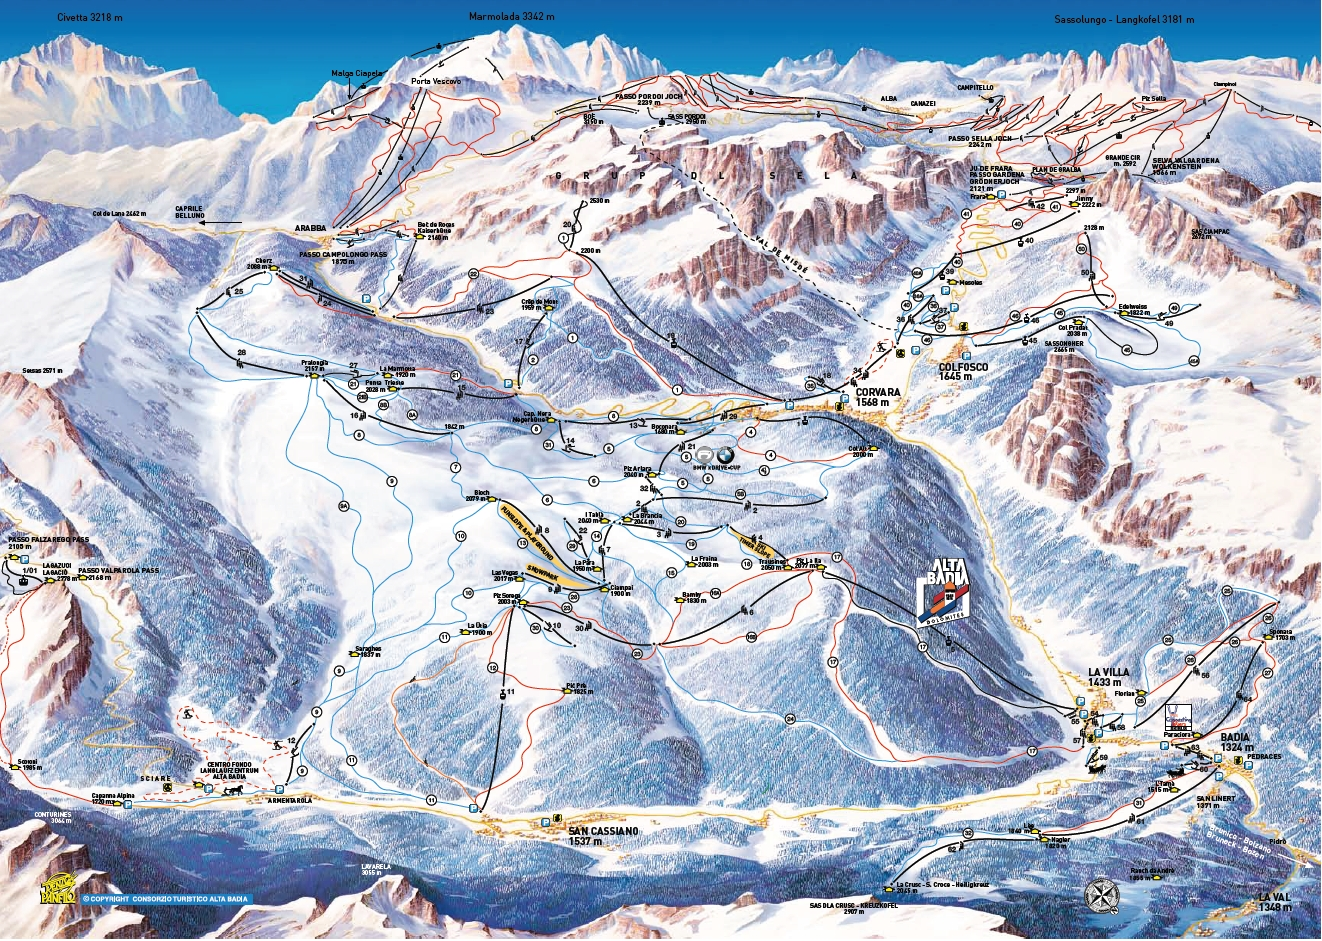 Badia (Alta Badia) Piste / Trail Map